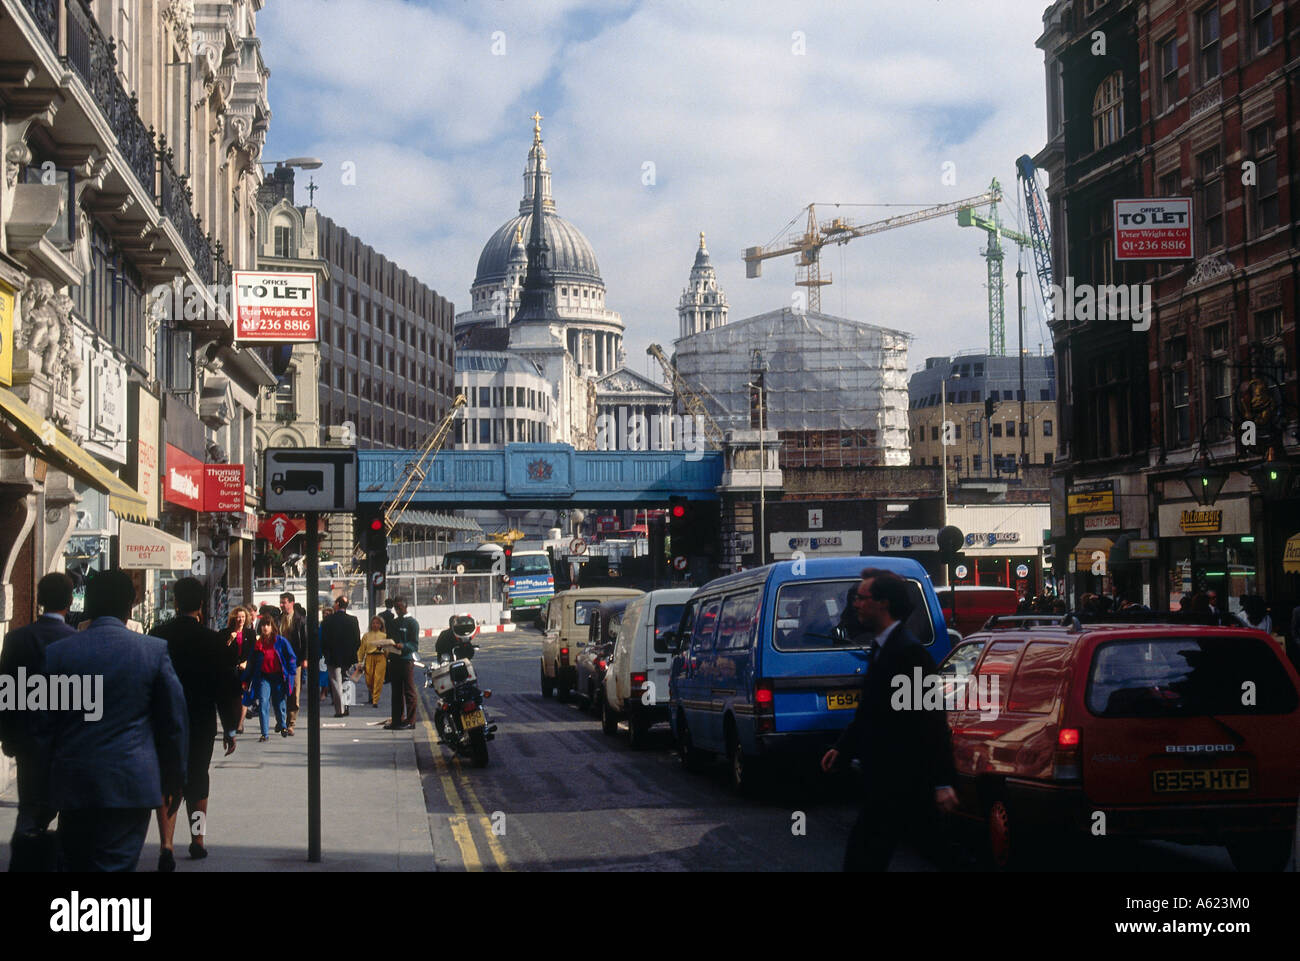 england ludgate hill london - photo #31